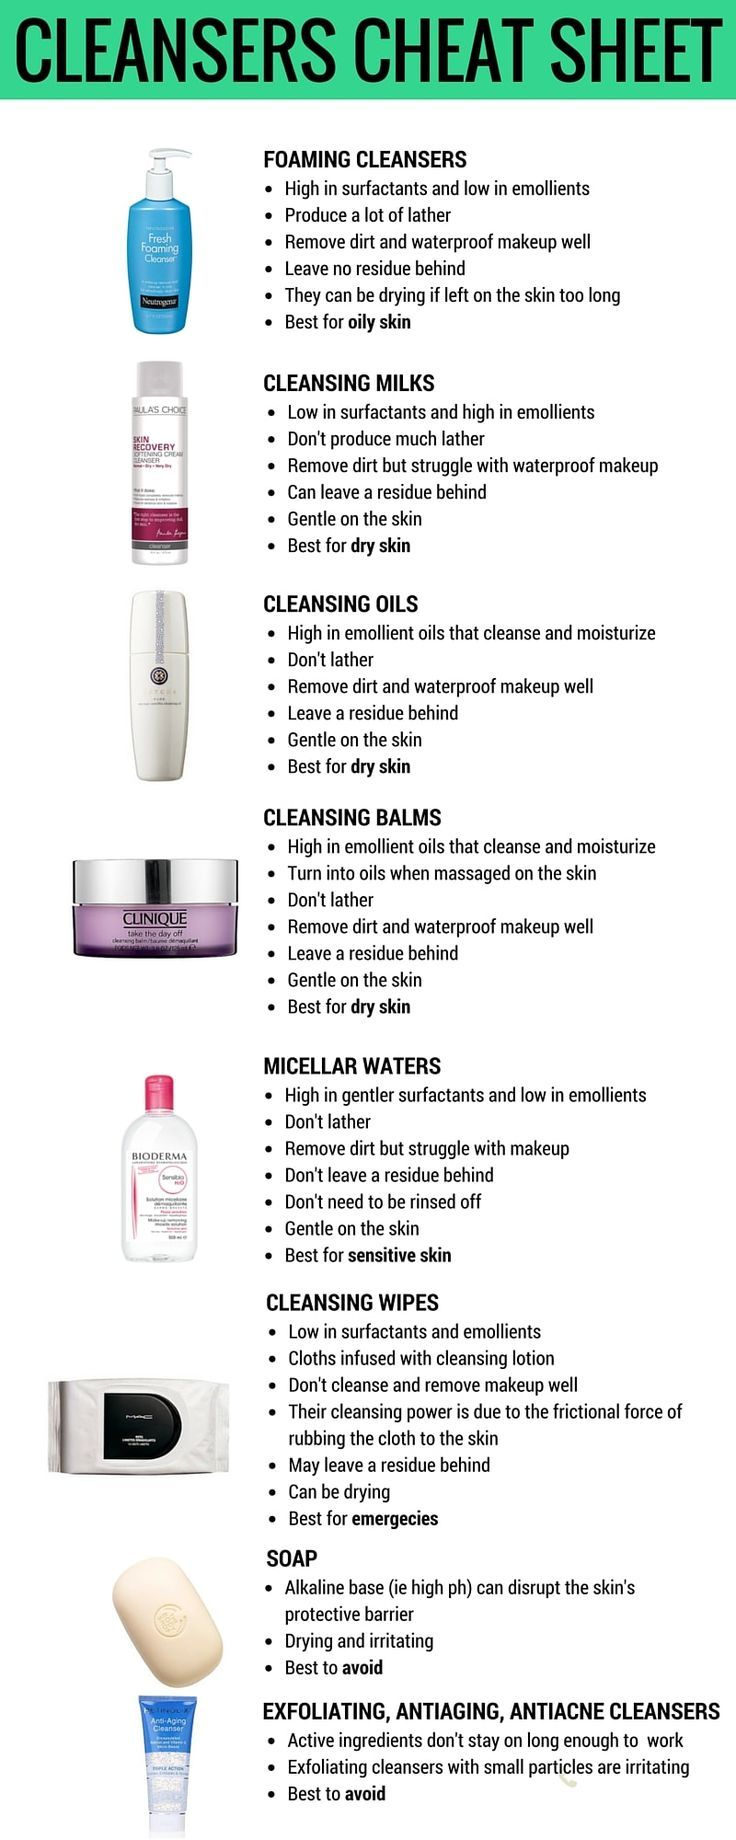 How To Pick The Best The Ordinary Products For Dry Skin Dry Skin Routine Moisturizer For Dry Skin Dry Skincare